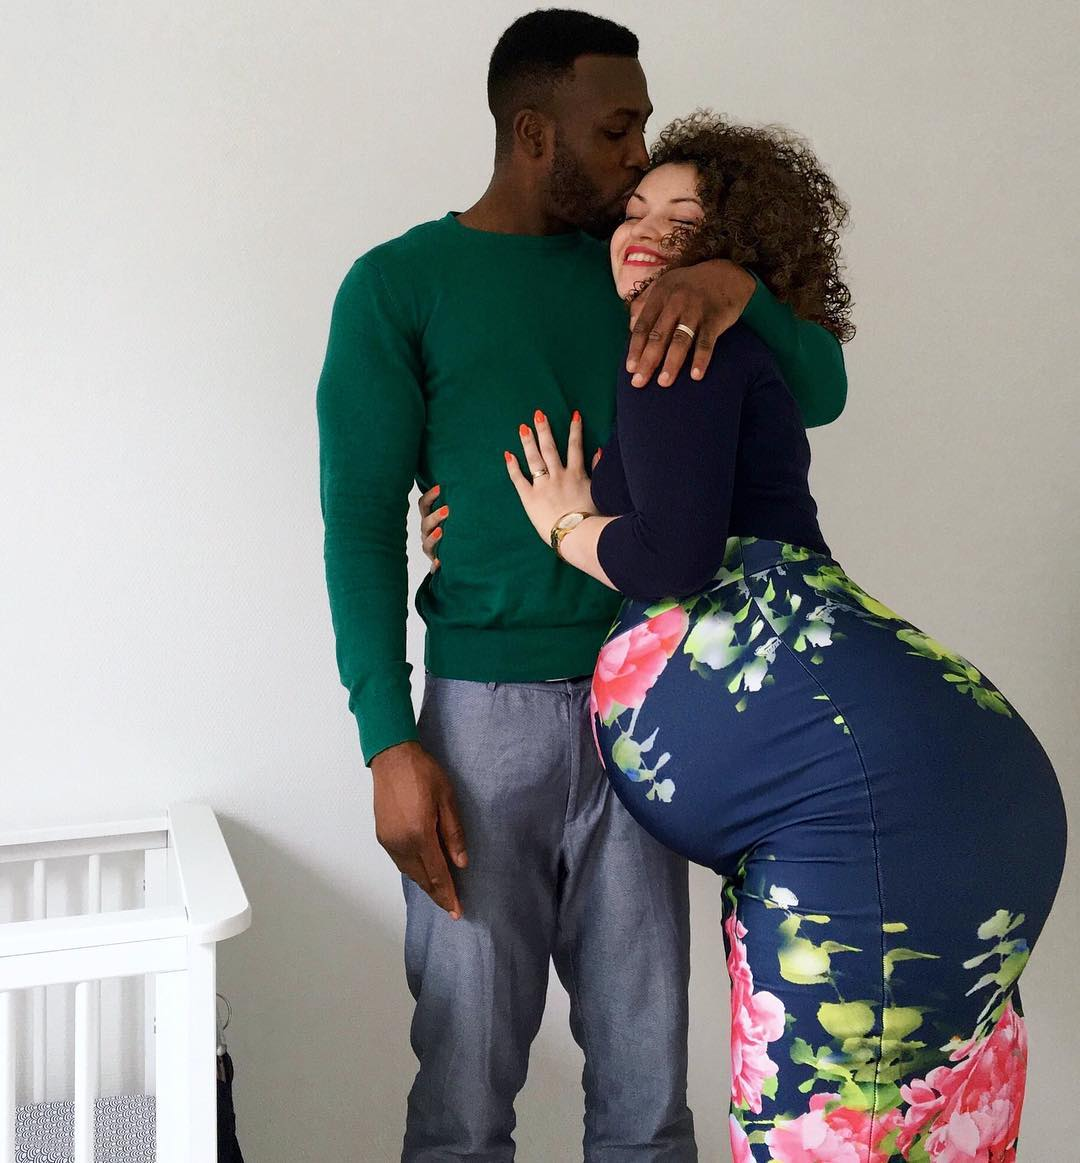 """""""She Carry Belle For Front & Back"""" - Media React To Lady's Pregnancy Photo"""